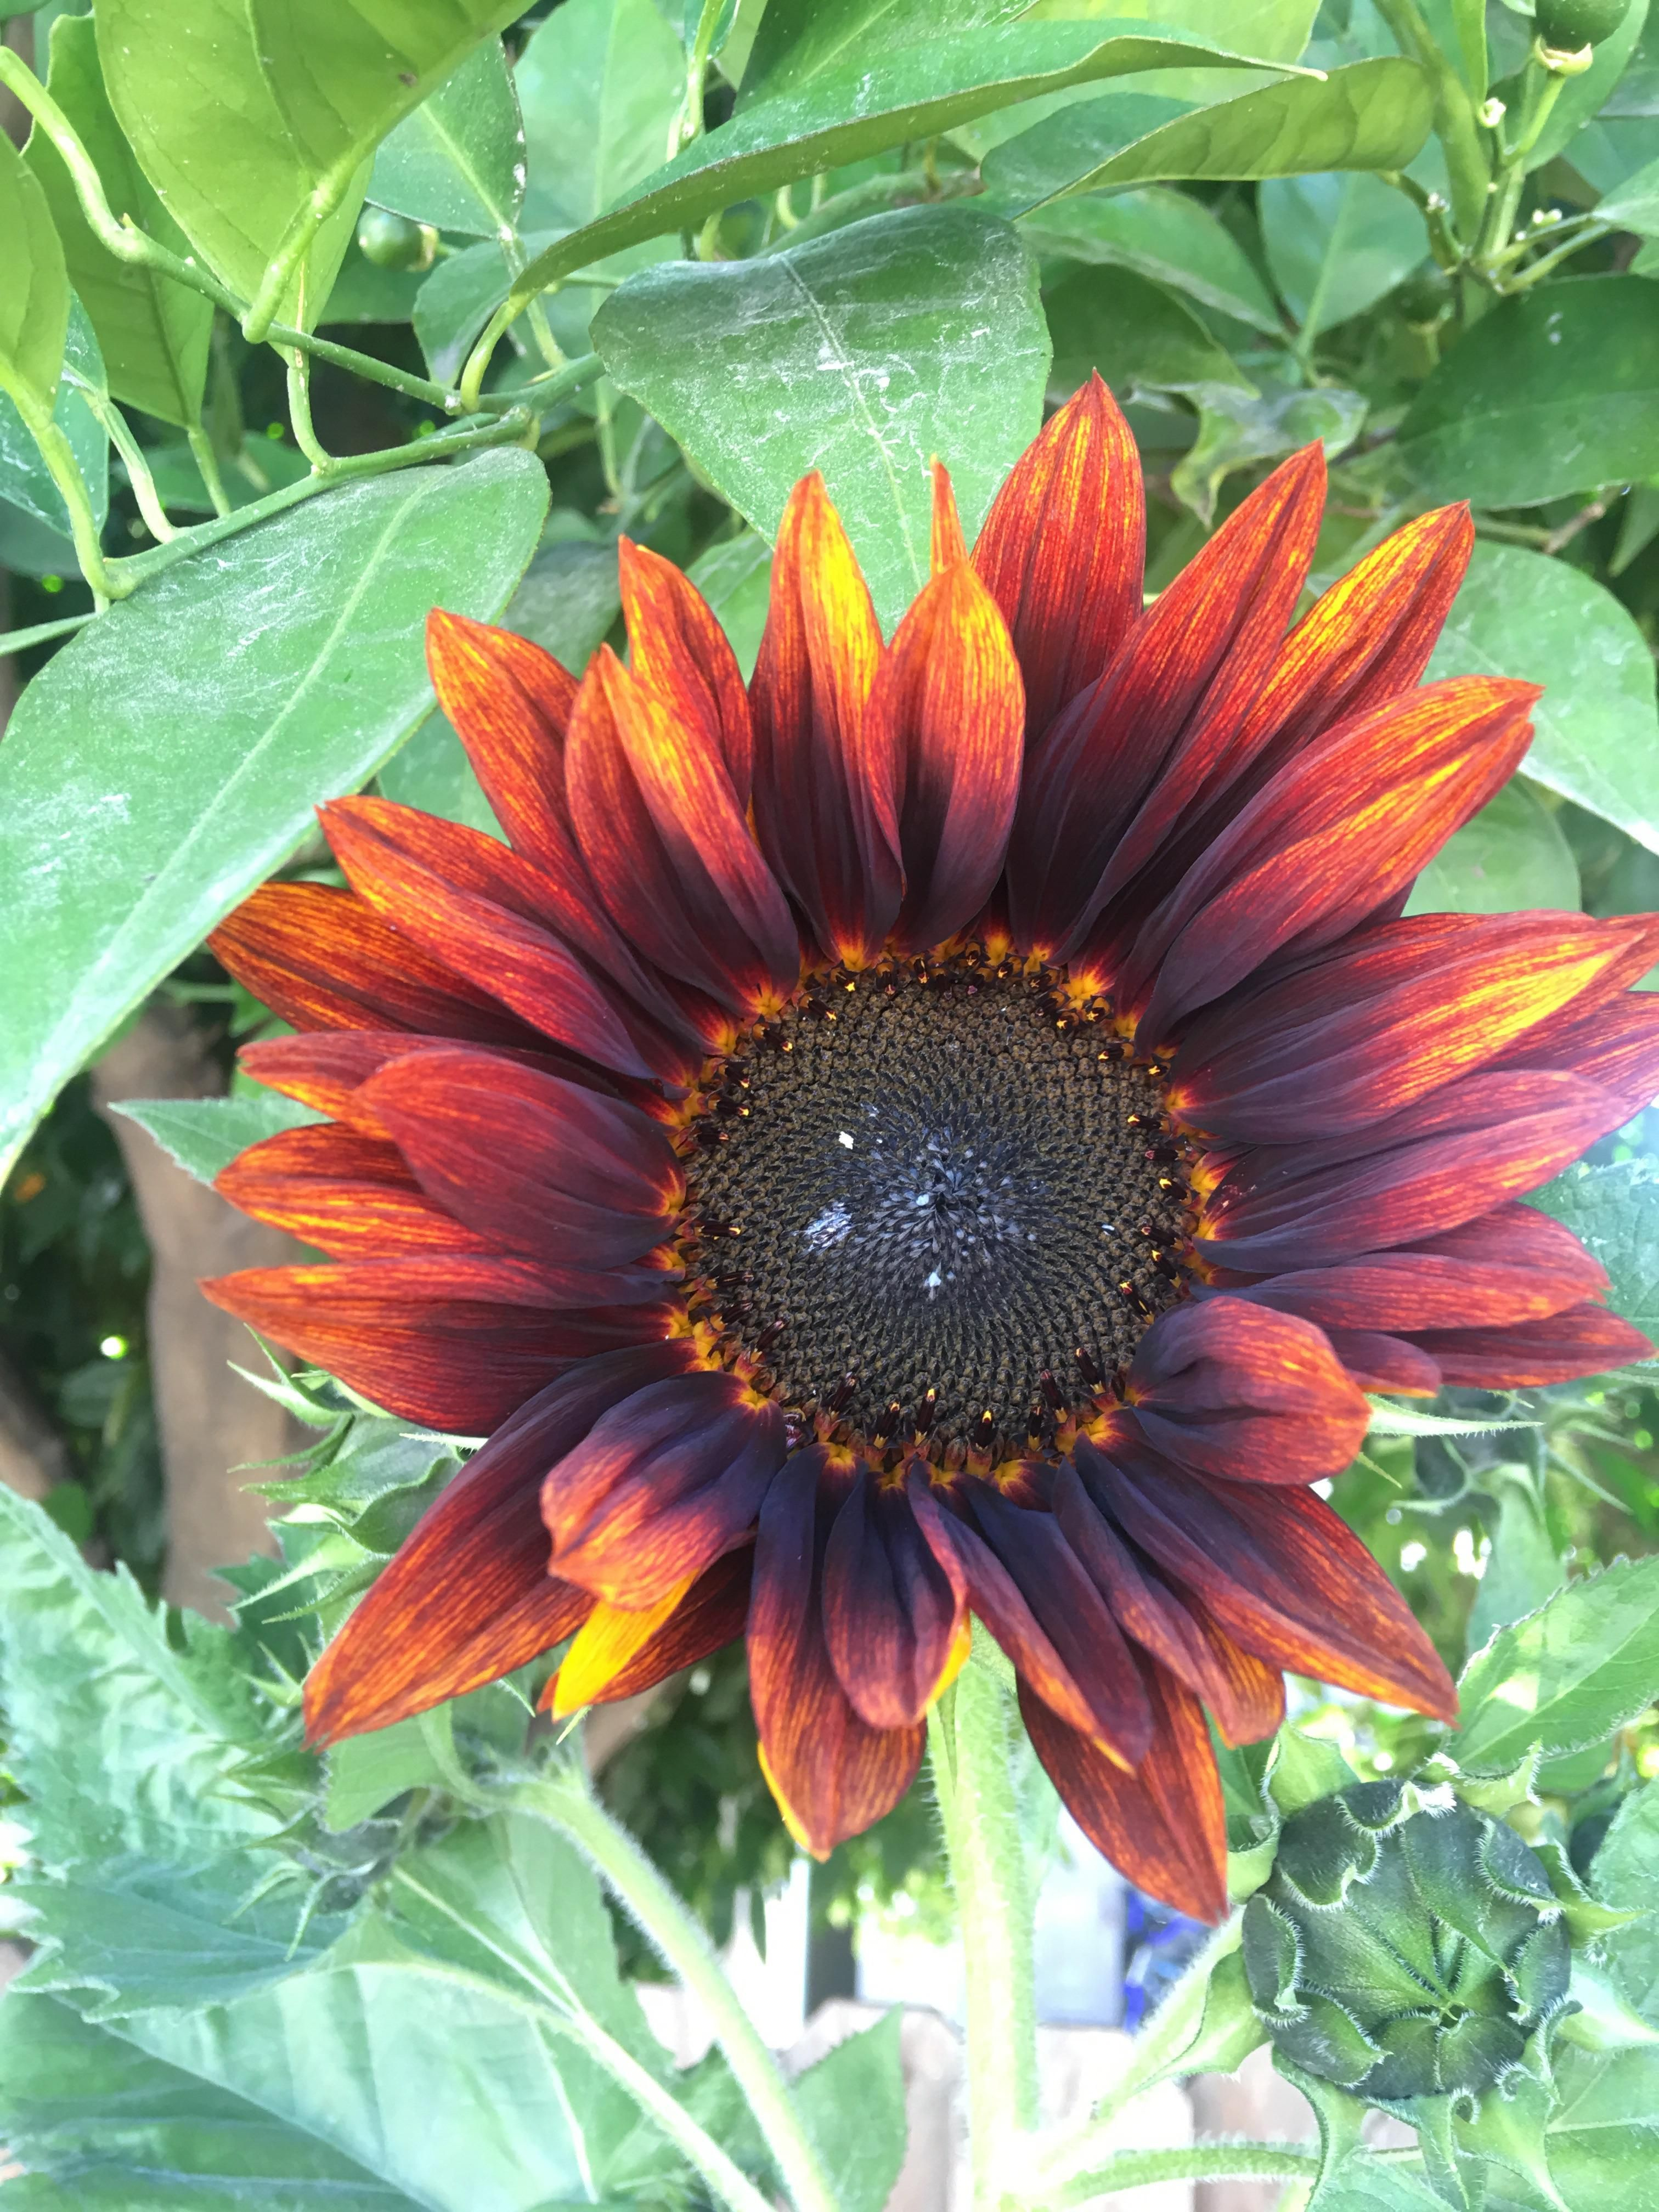 We Didnt Plant Sunflowers This Year Gardening Garden Diy Home Flowers Roses Nature Landscaping Horticulture Plants Sunflower Horticulture